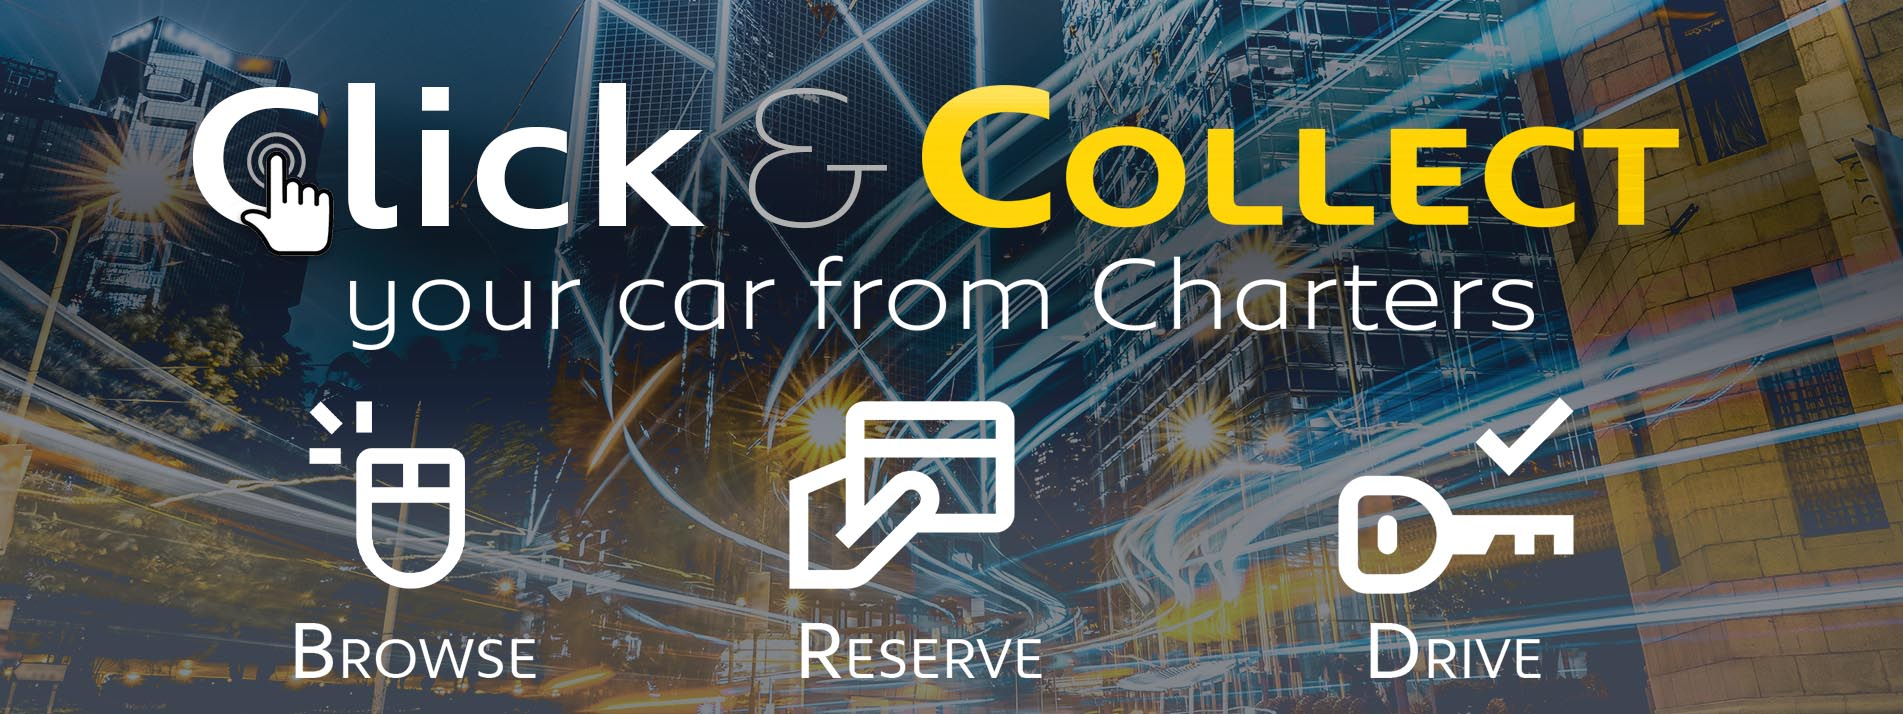 click-collect-your-new-car-from-charters-m-sli